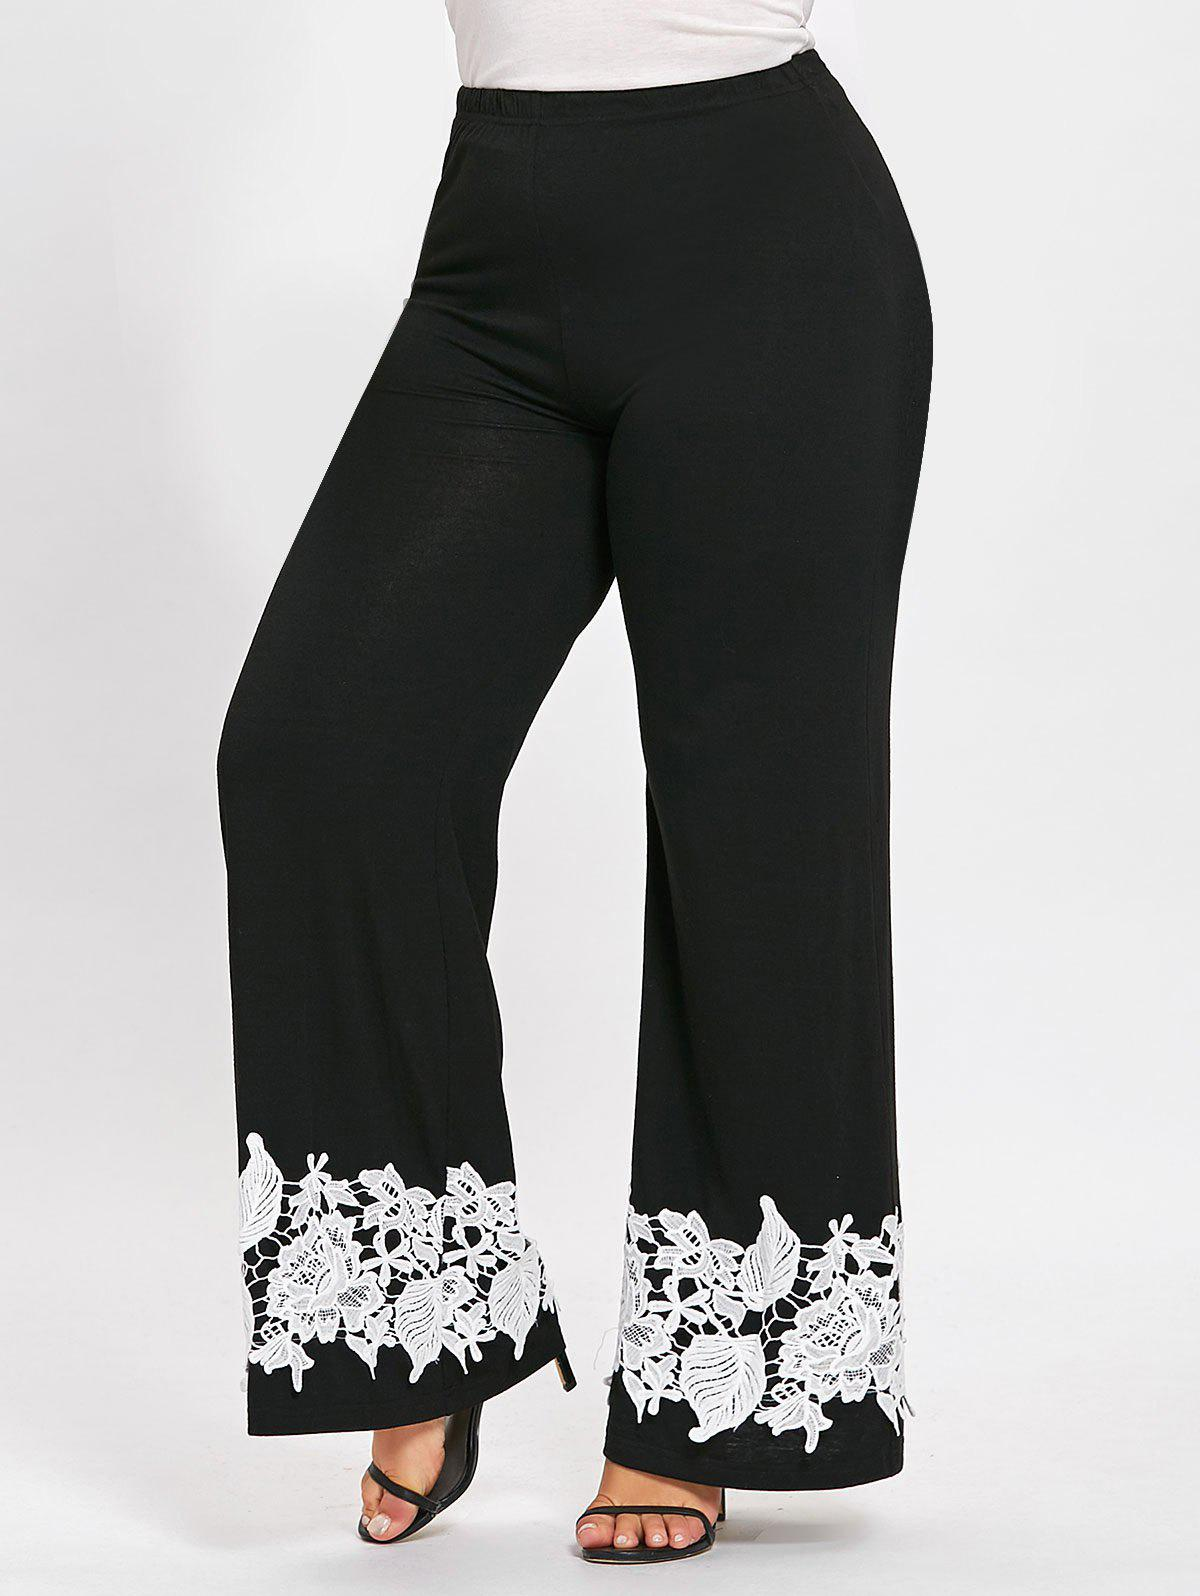 Plus Size Floral Appliqued Palazzo PantsWOMEN<br><br>Size: XL; Color: BLACK; Style: Casual; Length: Overlength; Material: Polyester,Spandex; Fit Type: Loose; Waist Type: Mid; Closure Type: Elastic Waist; Pattern Type: Floral; Embellishment: Appliques; Pant Style: Wide Leg Pants; Weight: 0.4000kg; Package Contents: 1 x Pants;